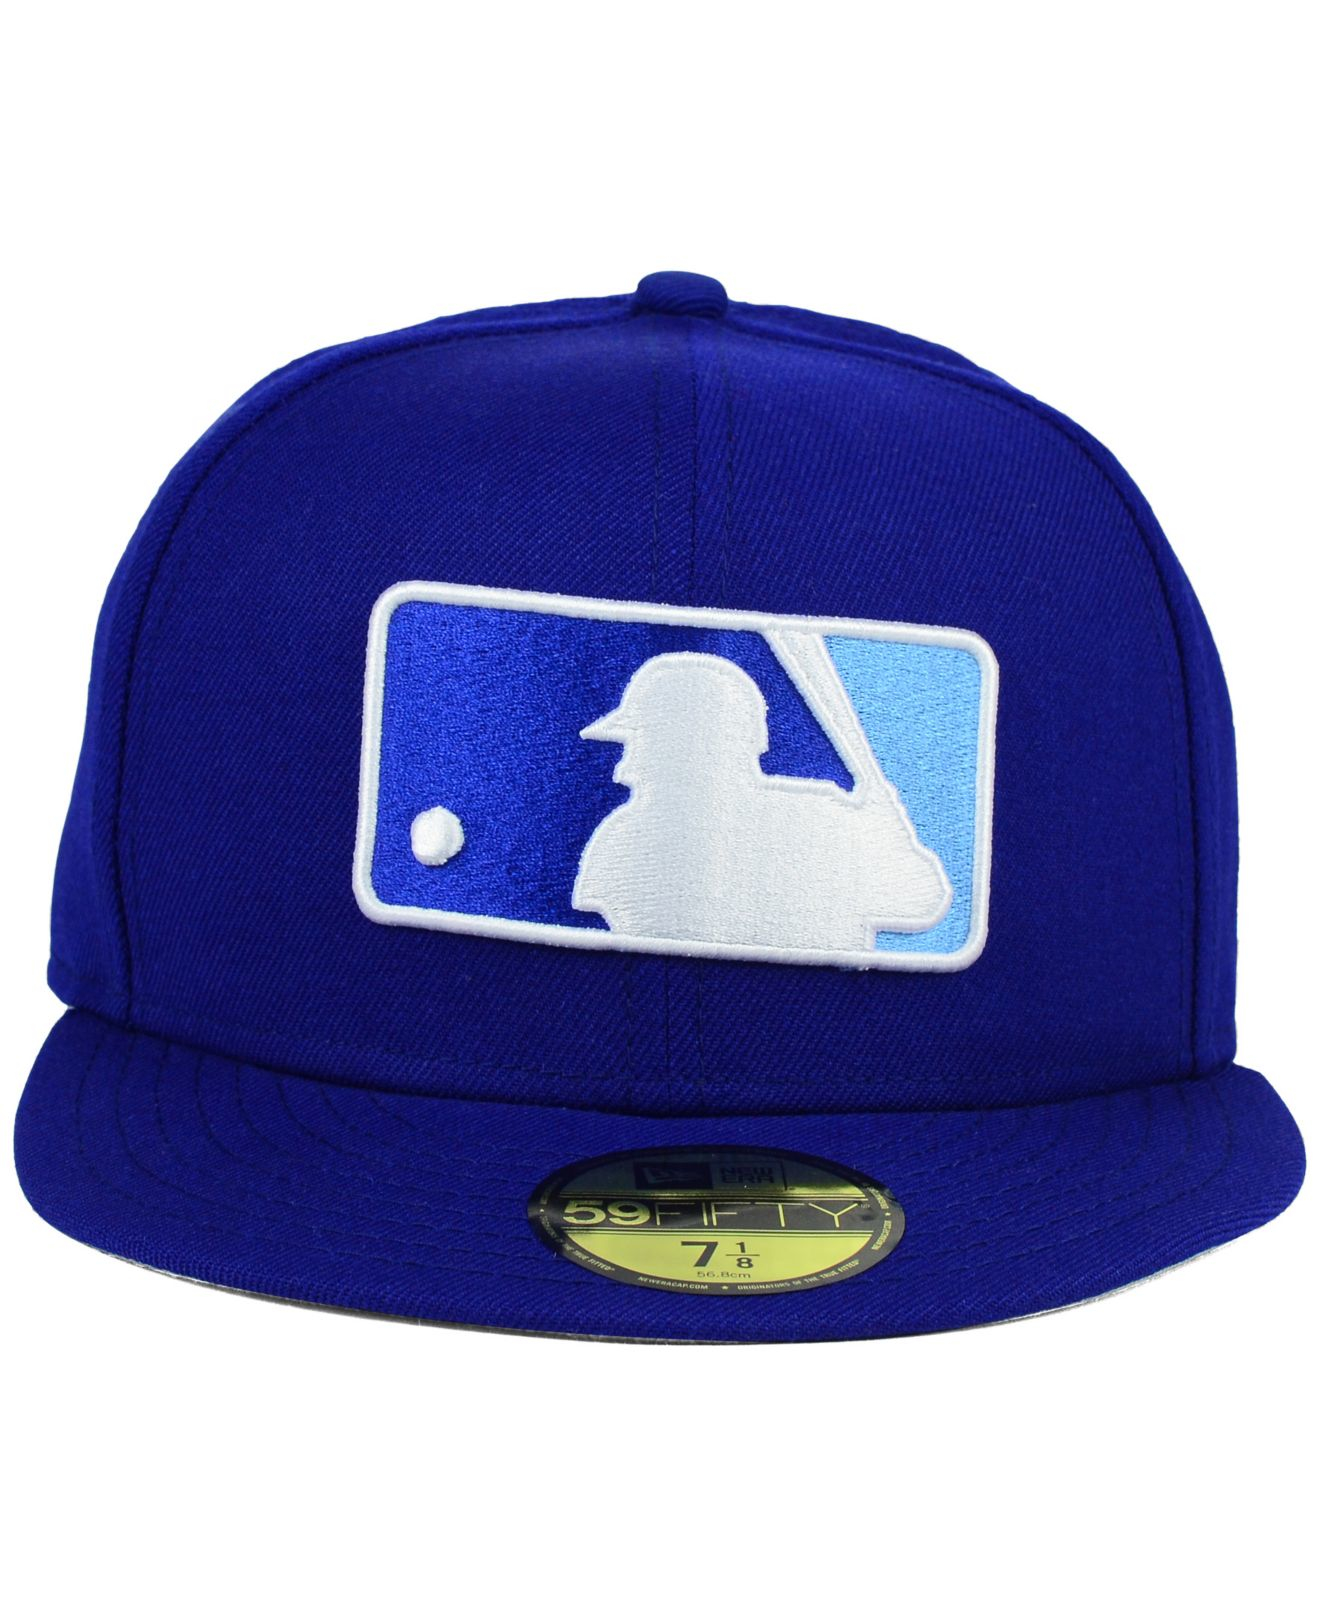 ... discount code for lyst ktz kansas city royals team logo man 59fifty cap  in blue for 6debeda4816c